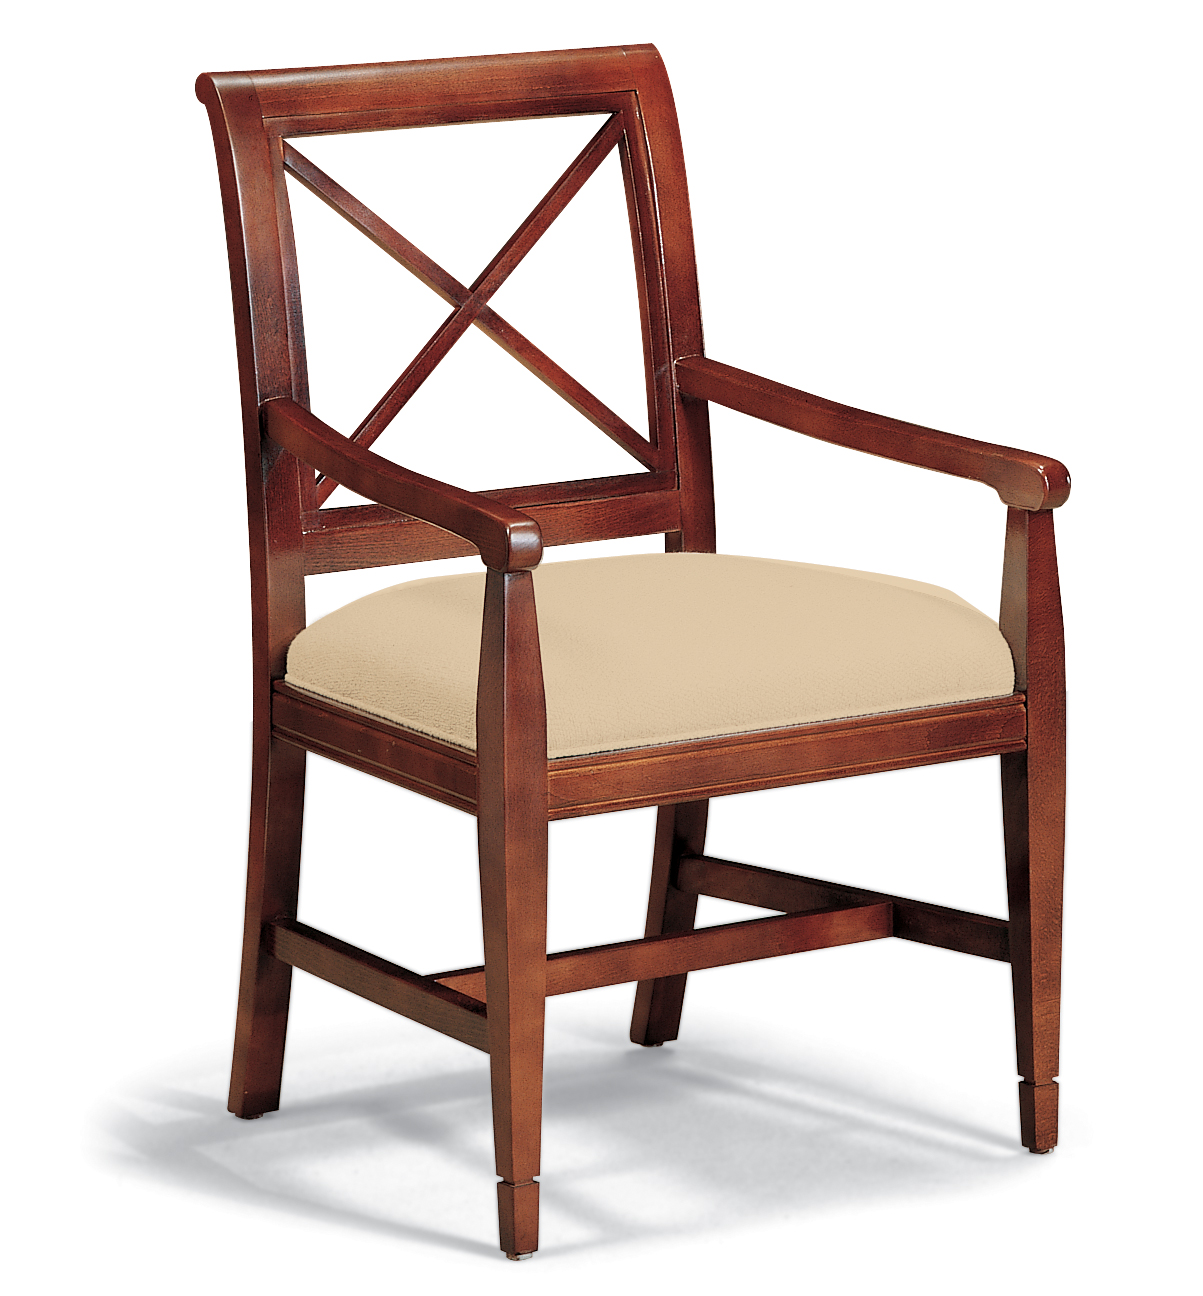 Wooden Arm Chair 4007 Wood Arm Chair